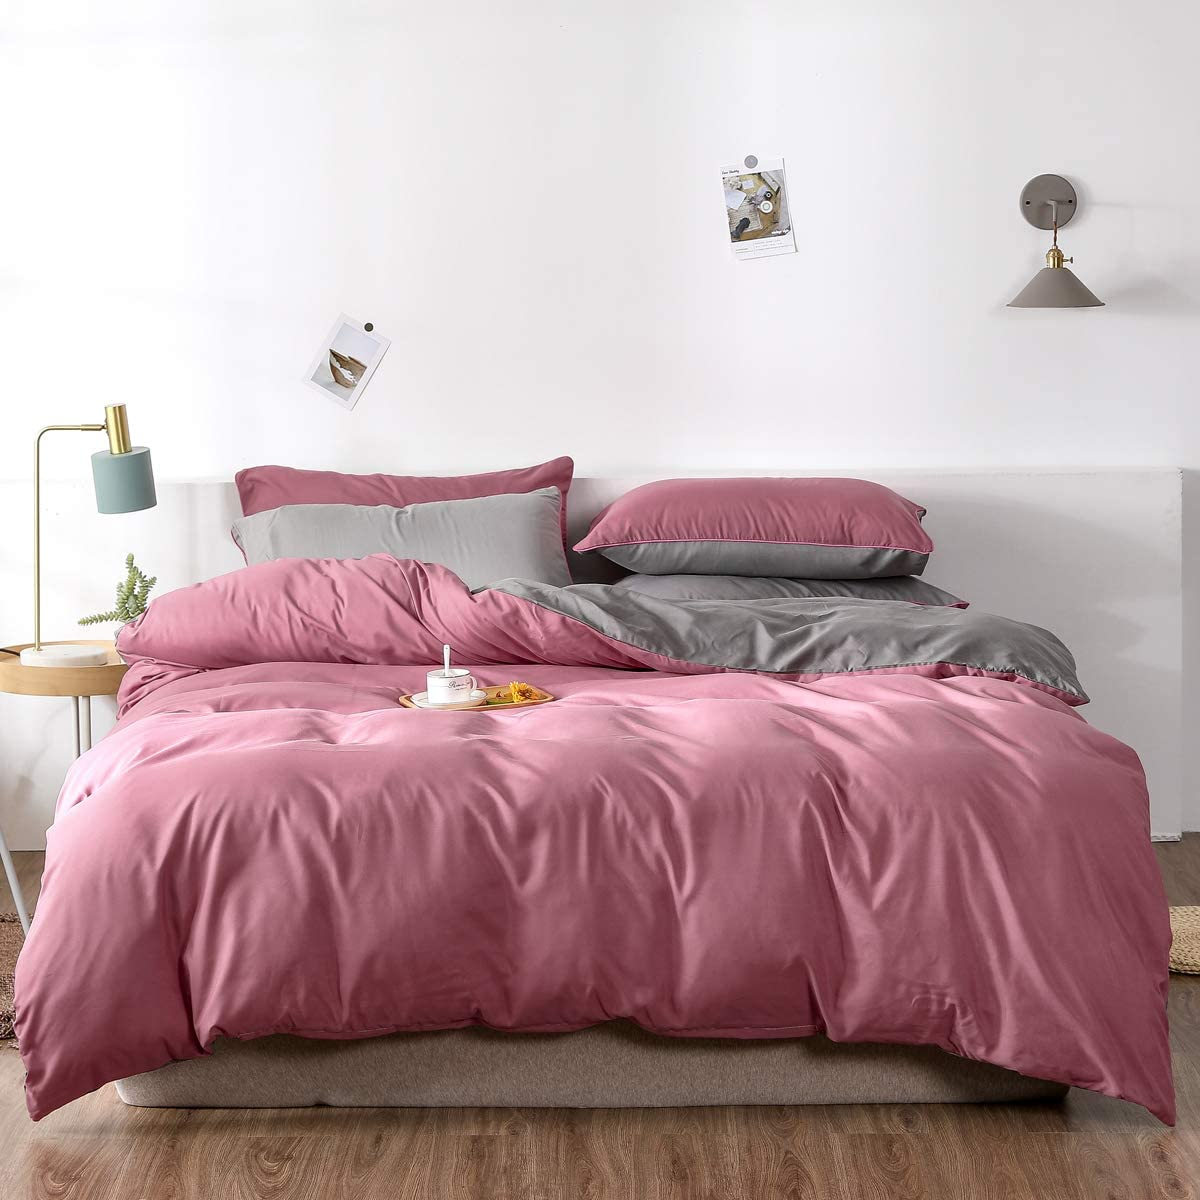 Max 78% OFF Manfei Rose Gray Duvet San Jose Mall Cover Set Microfiber Bed Solid 100% Color